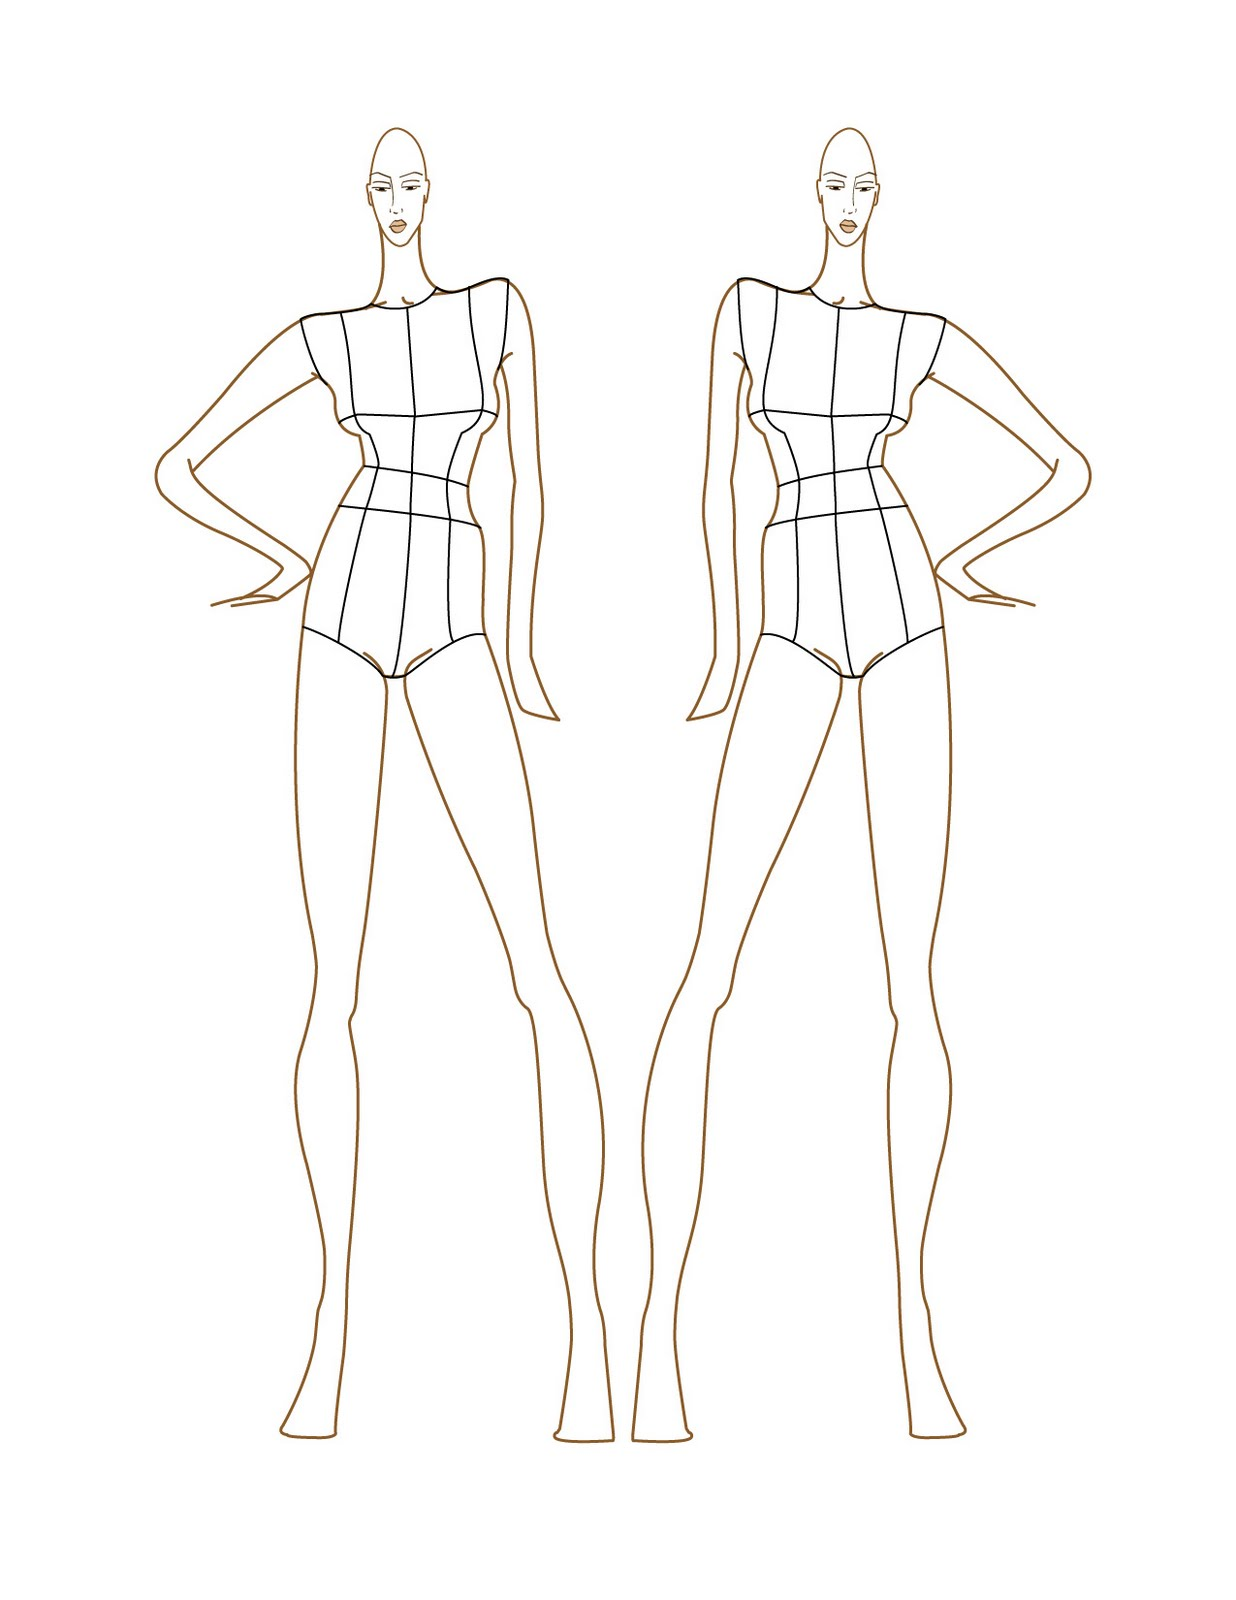 12 Costume Design Template Images Fashion Design Model Outline Template Male Costume Design Body Templates And Fashion Design Body Outline Template Newdesignfile Com